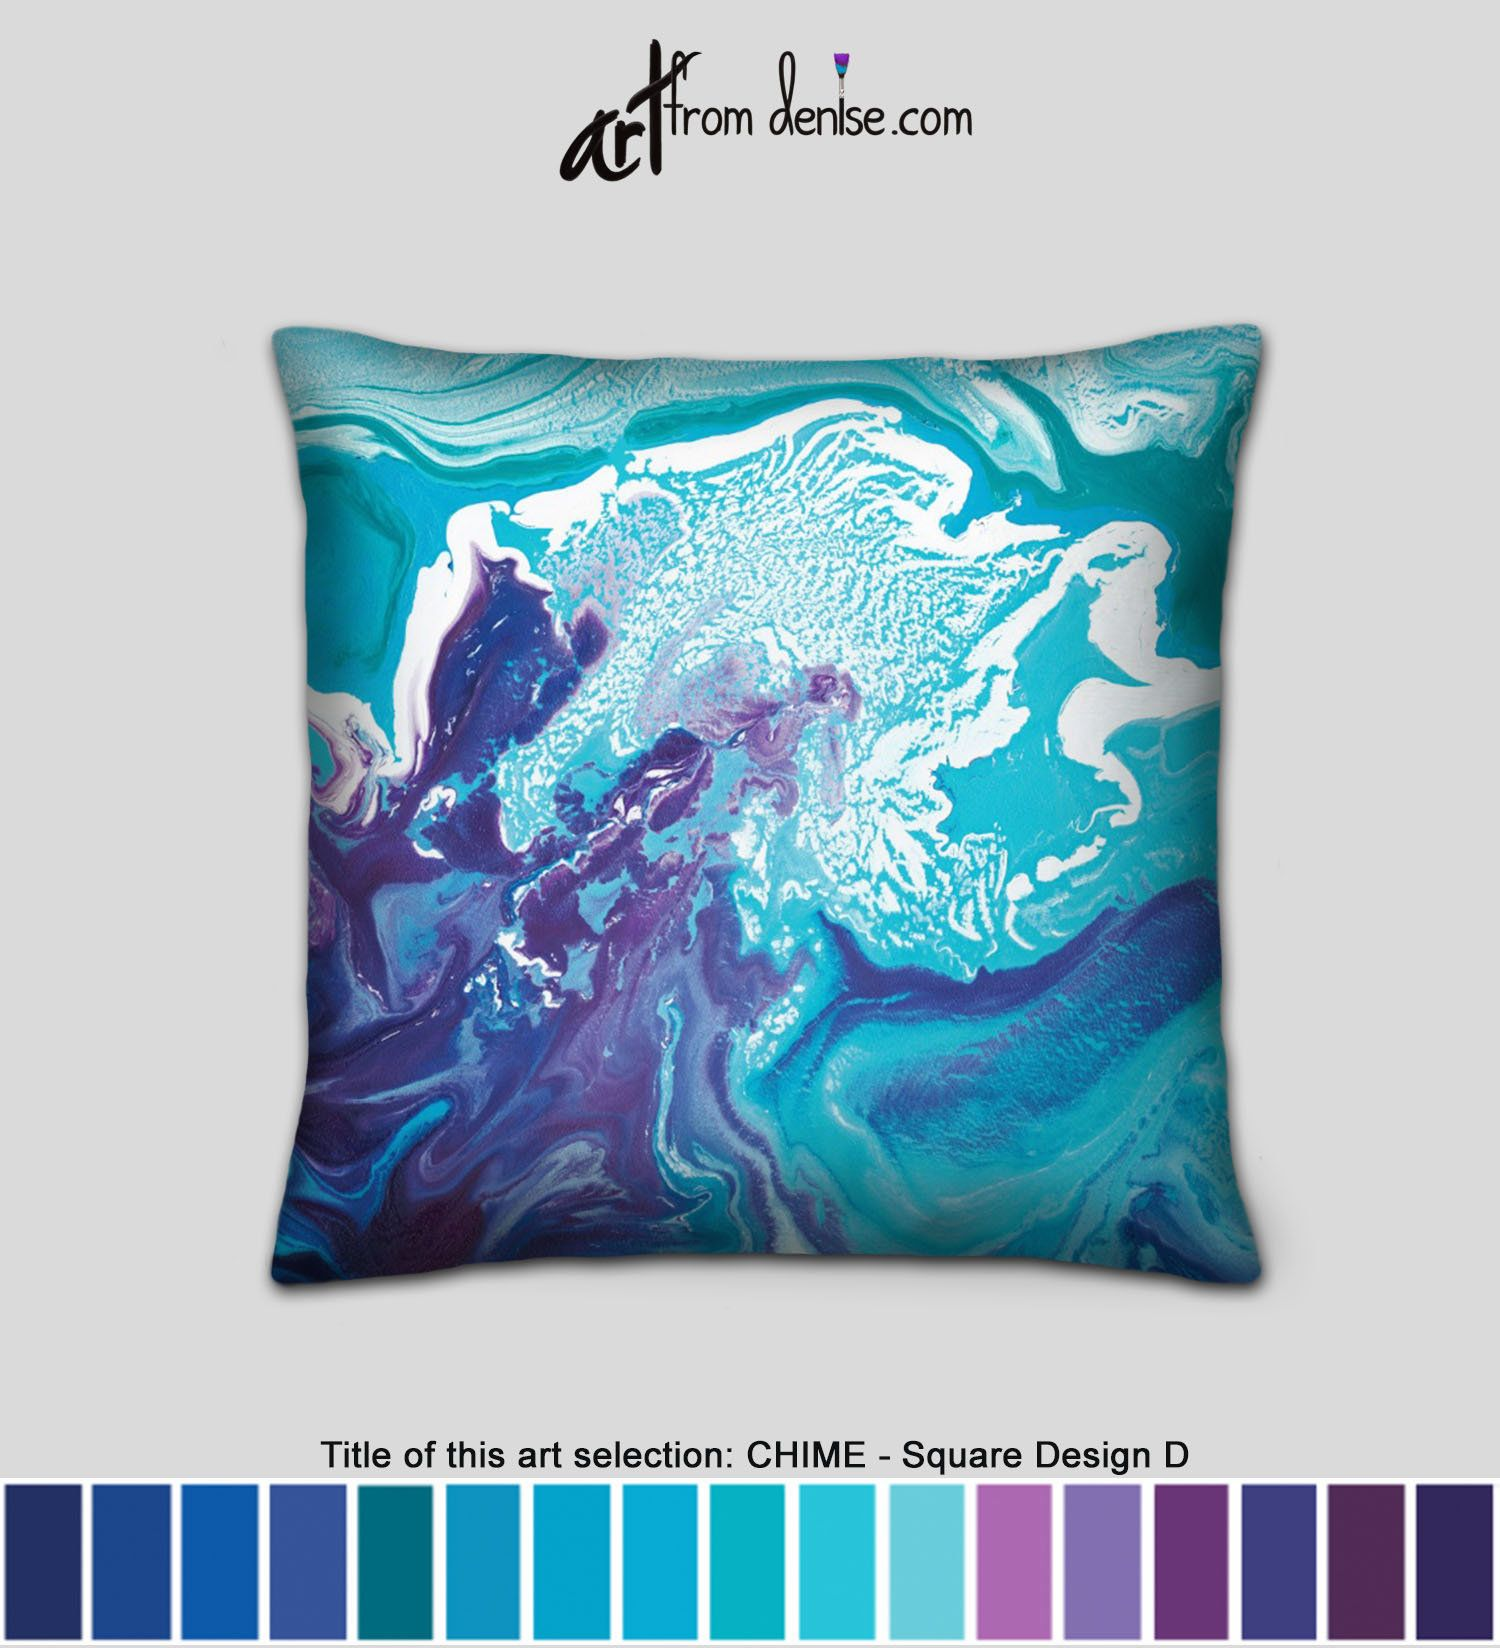 Turquoise Blue Purple Throw Pillows Small Decorative Pillow For Bed Decor Large Couch Pillows Set Covers Or Outdoor Sofa Cushions In 2020 Purple Throw Pillows Small Decorative Pillow Couch Pillow Sets